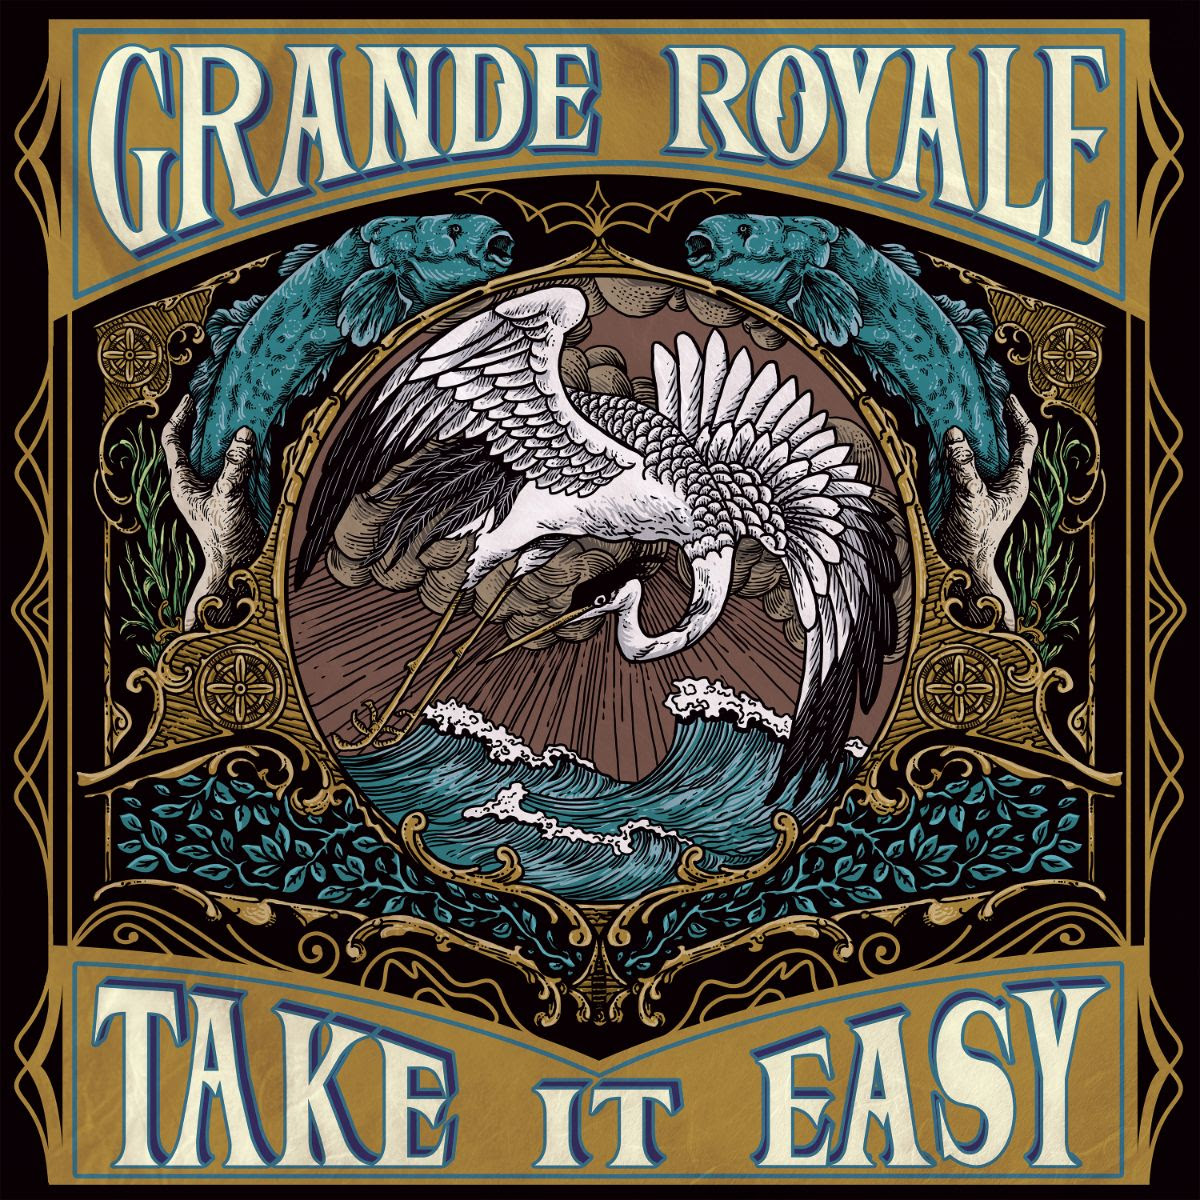 Grande Royale Take it Easy